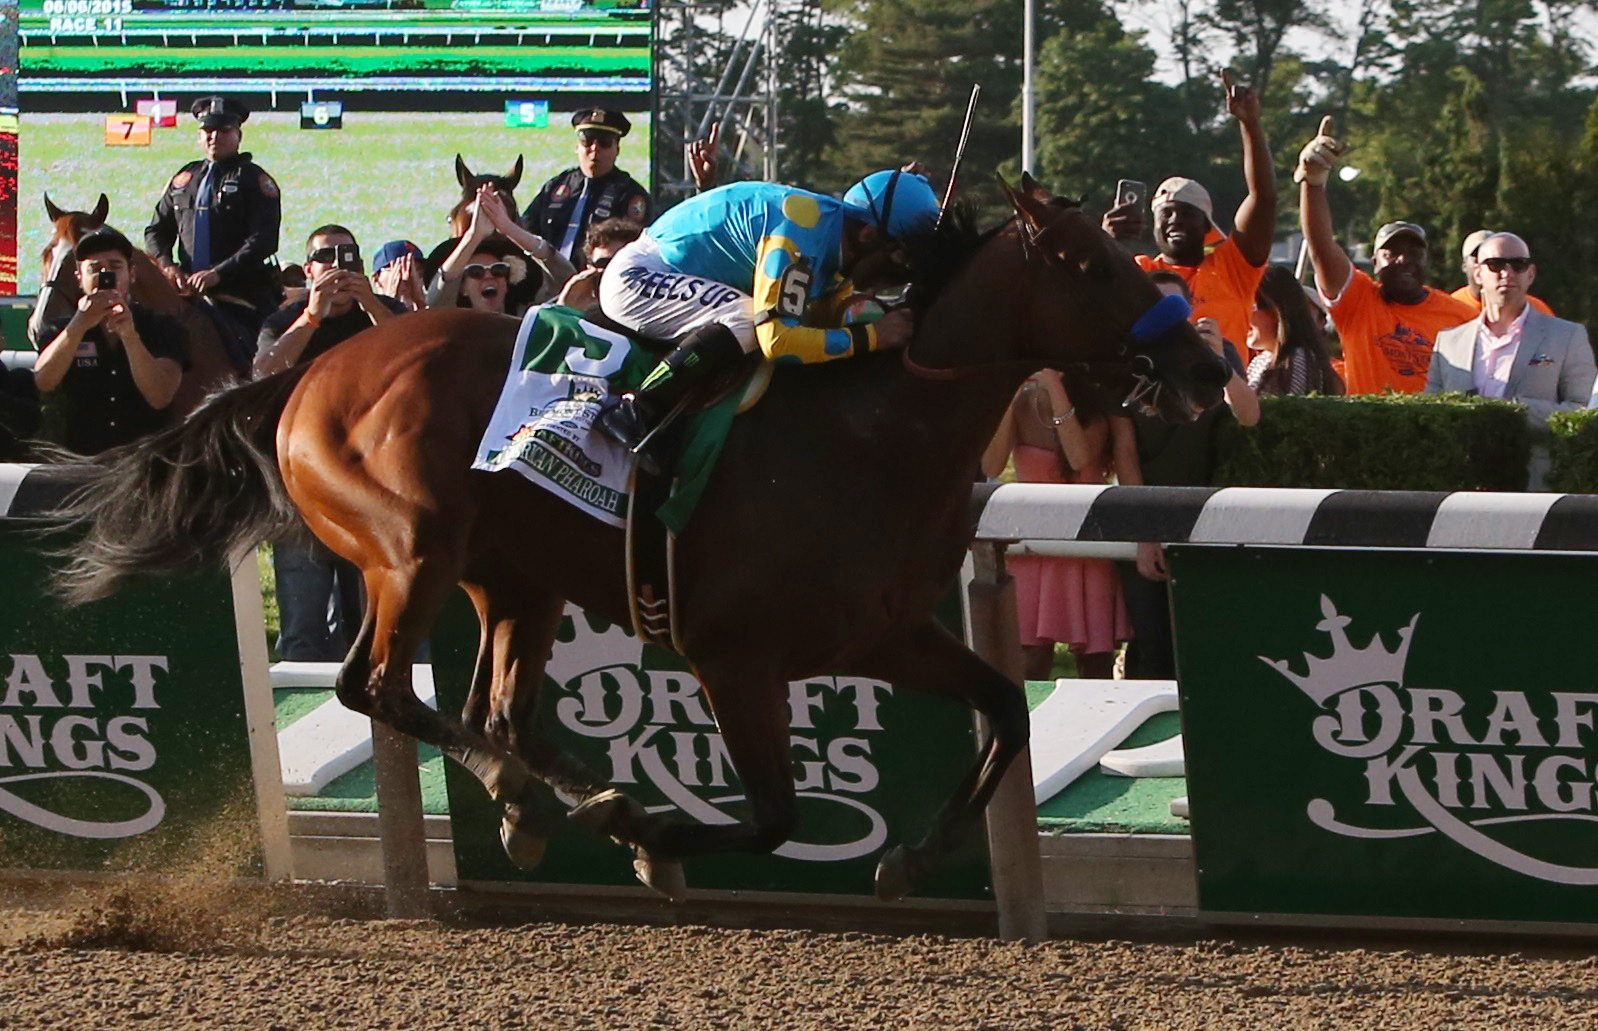 Espinoza and American Pharoah near the finish line. Photo by Carlo Allegri/Reuters